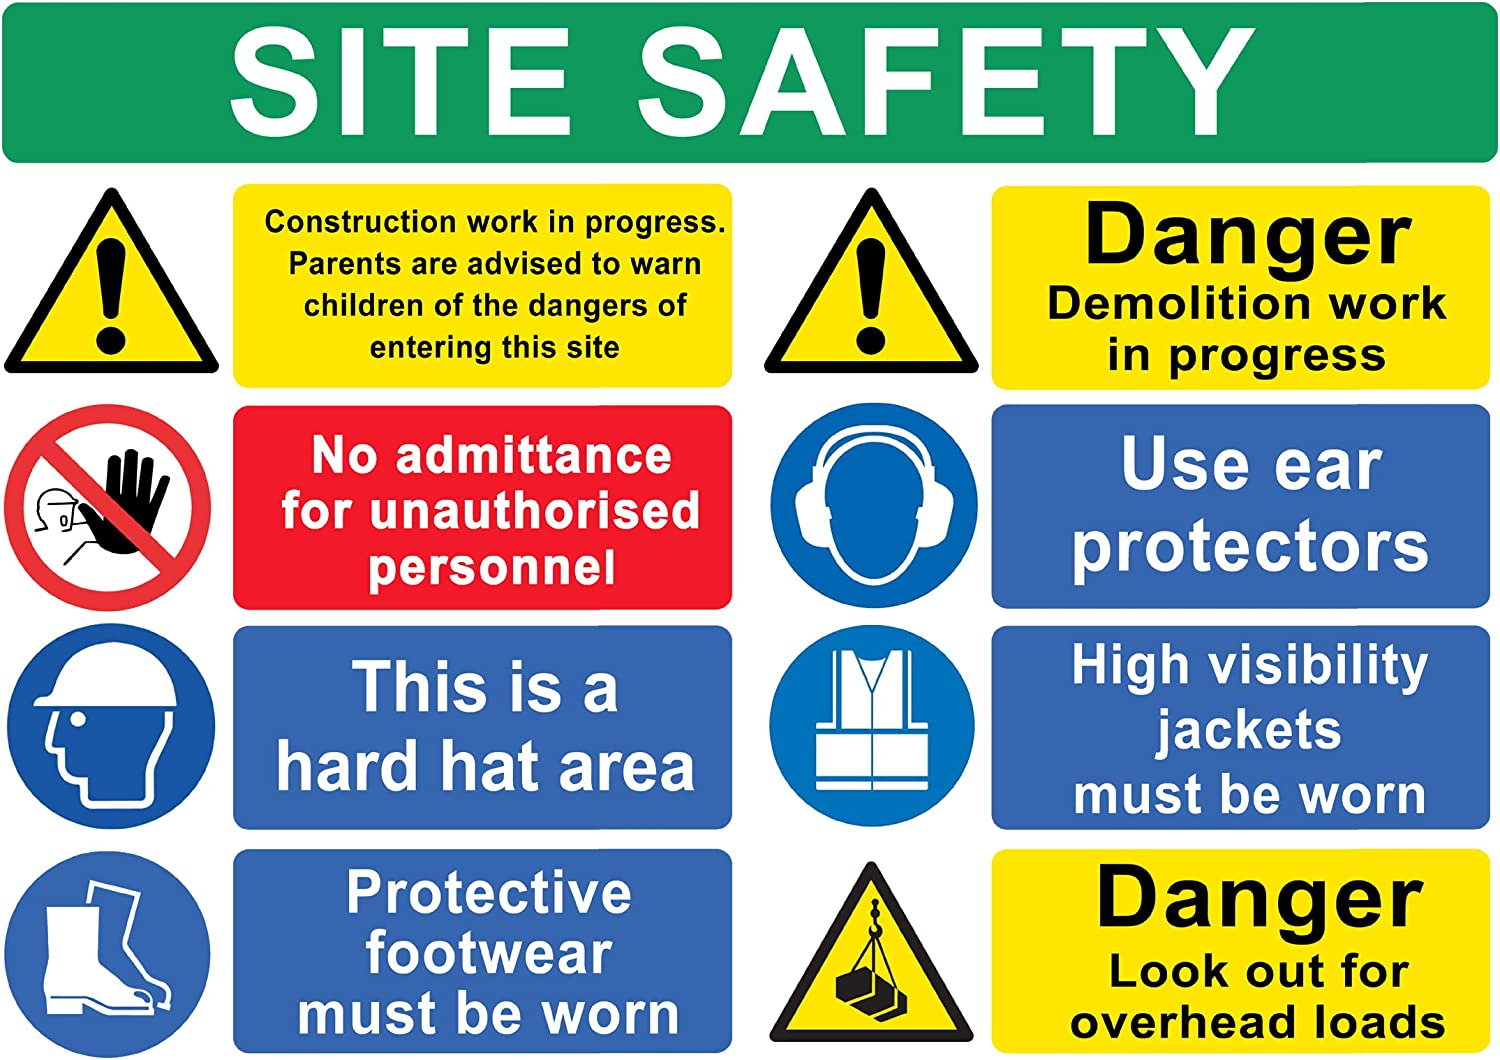 Hearing protection must be worn A3 1mm Rigid Plastic Safety Sign